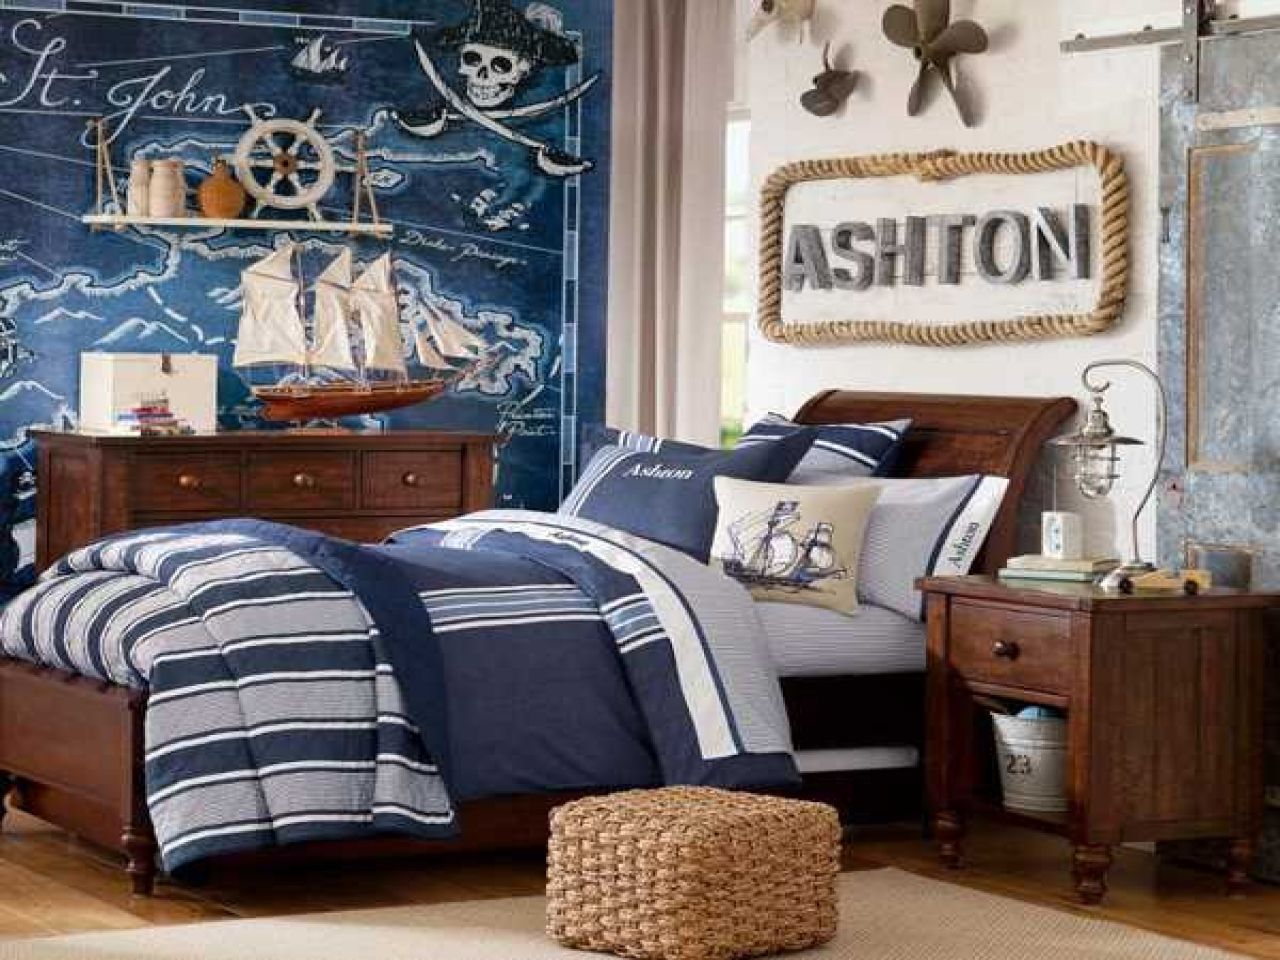 Bedroom Sets Pottery Barn barn-boy-furniture-pottery-barn-boys-room-ideas-excellent-kids